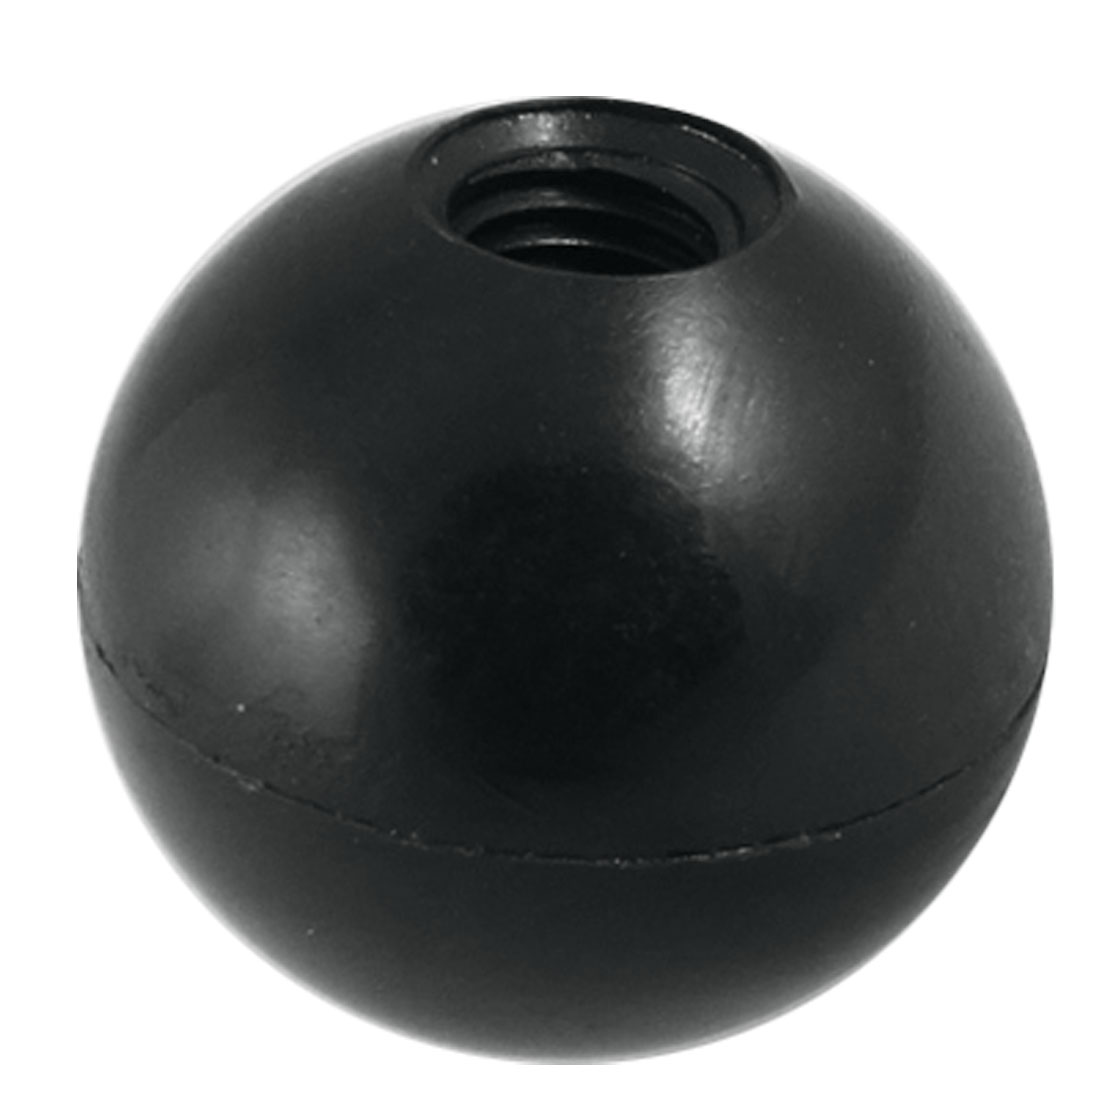 Black Plastic 10mm Threaded 40mm Diameter Ball Knob Handle